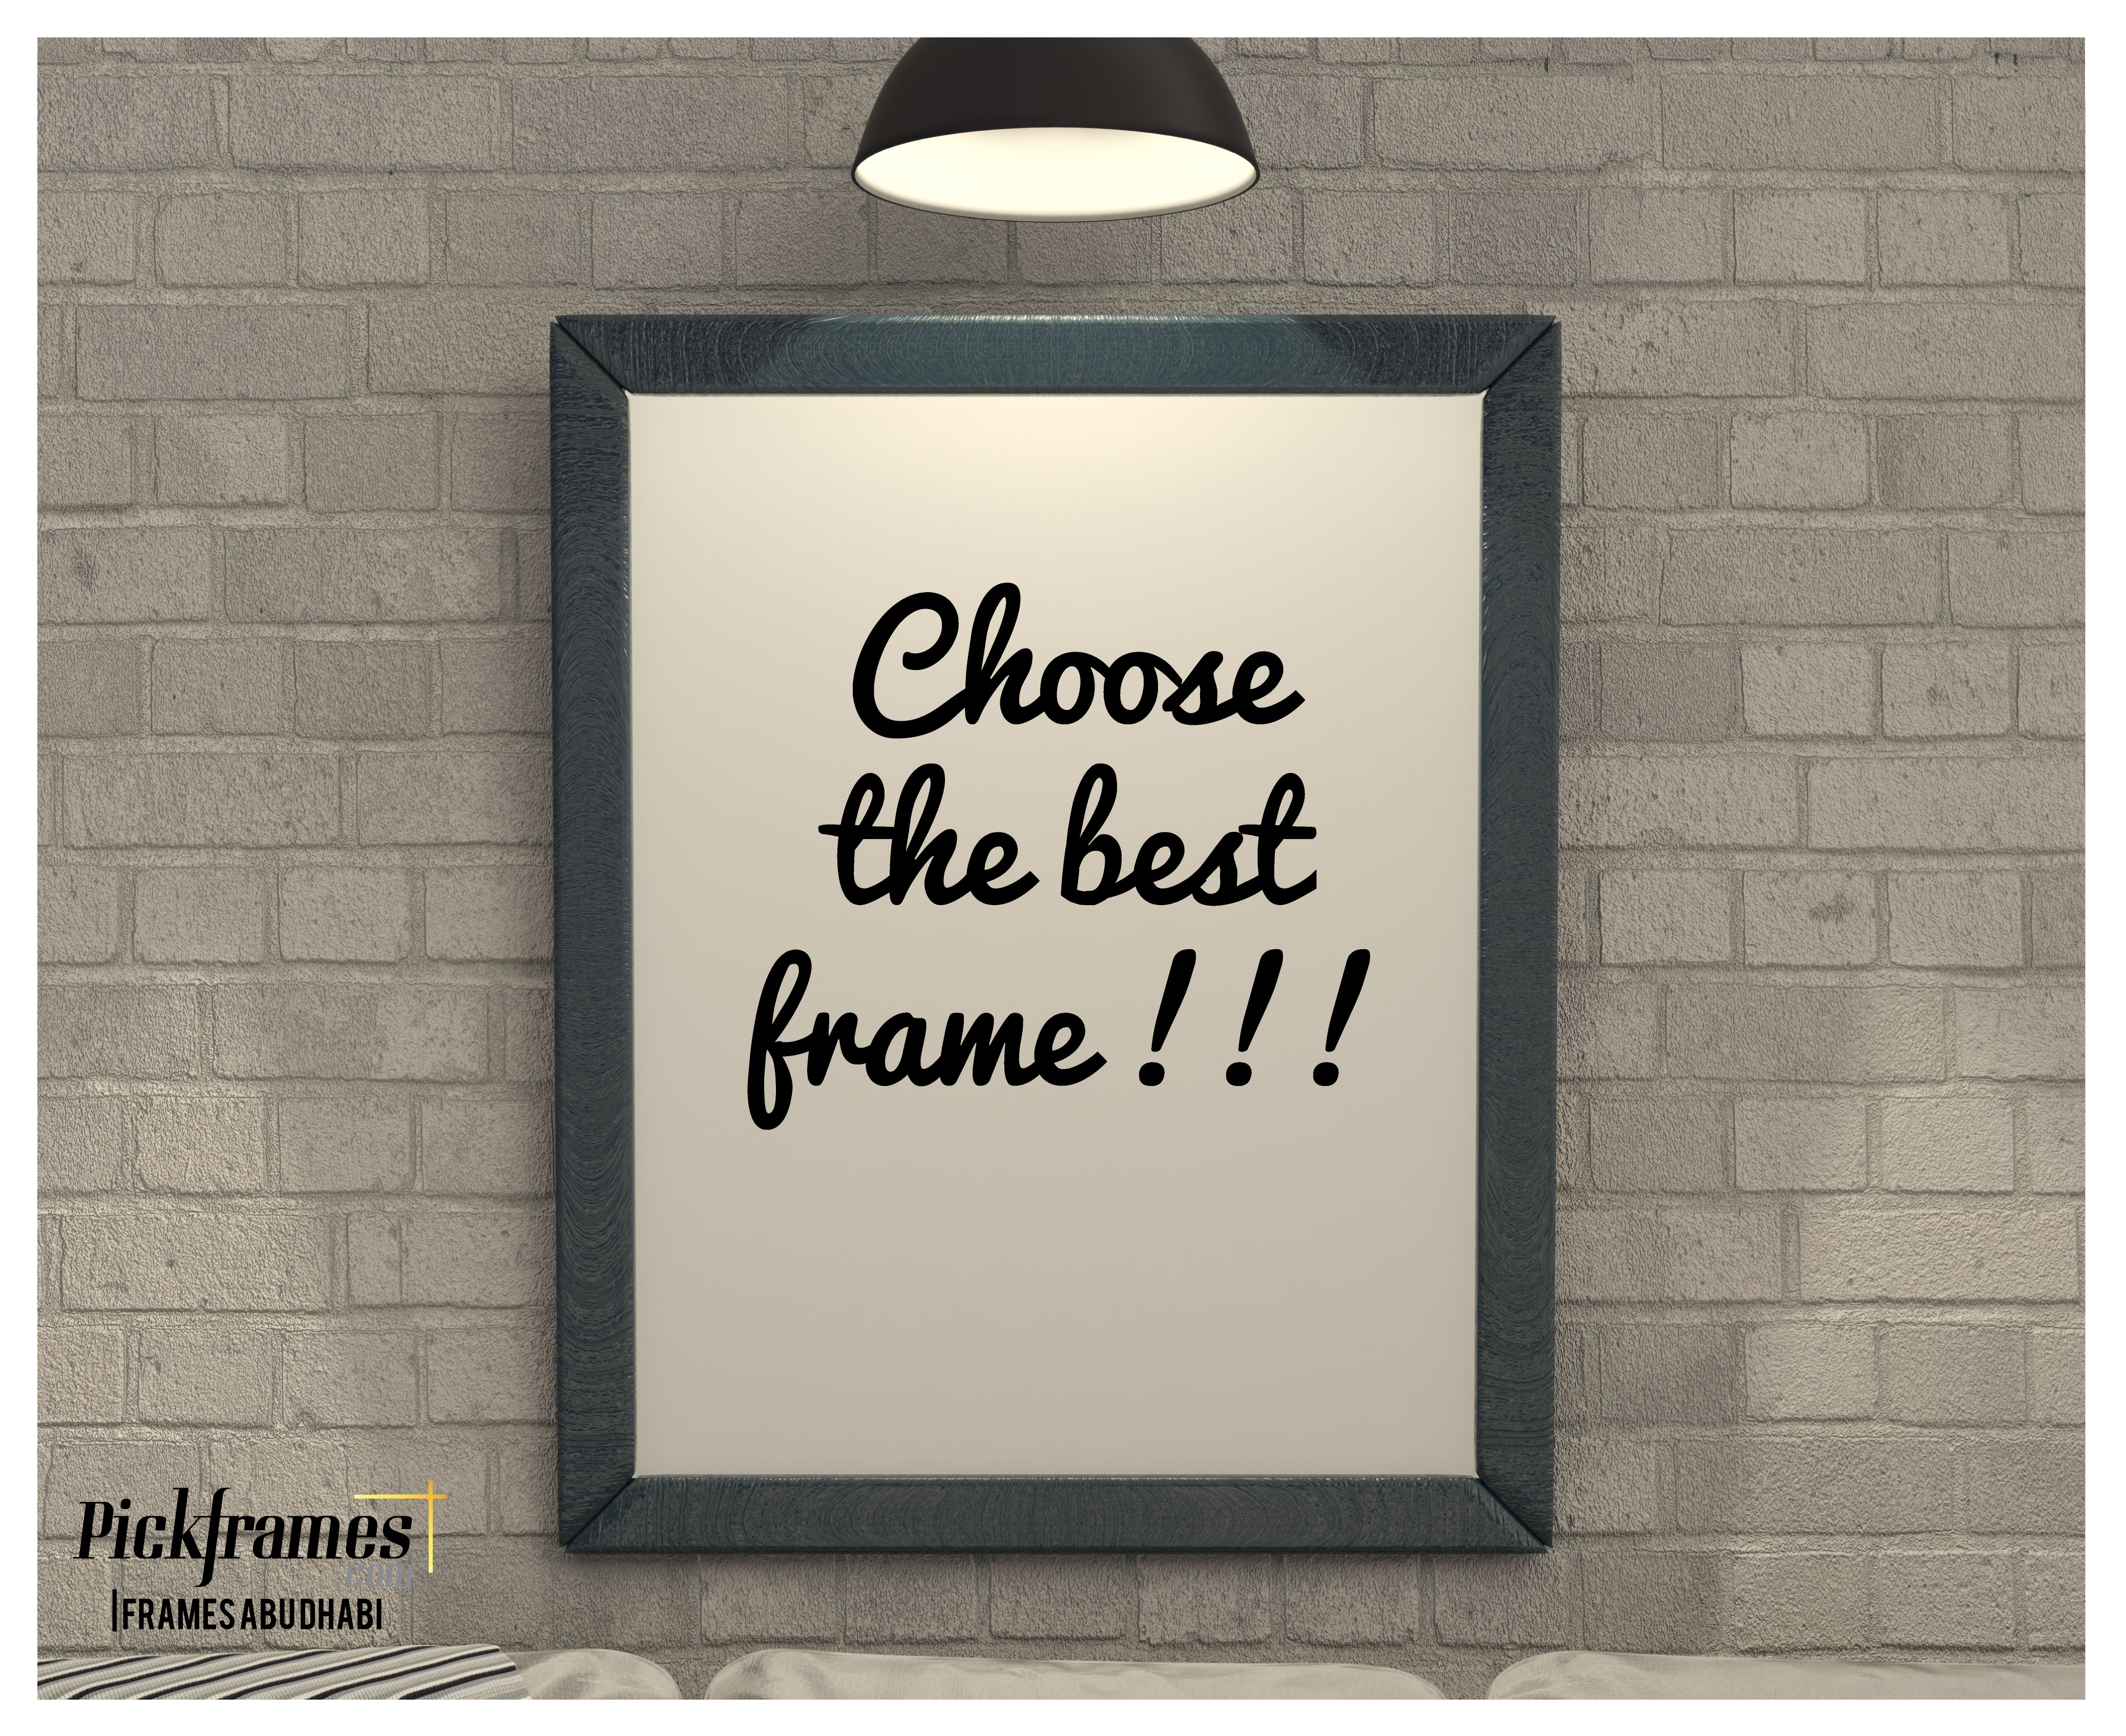 How to select the best frame